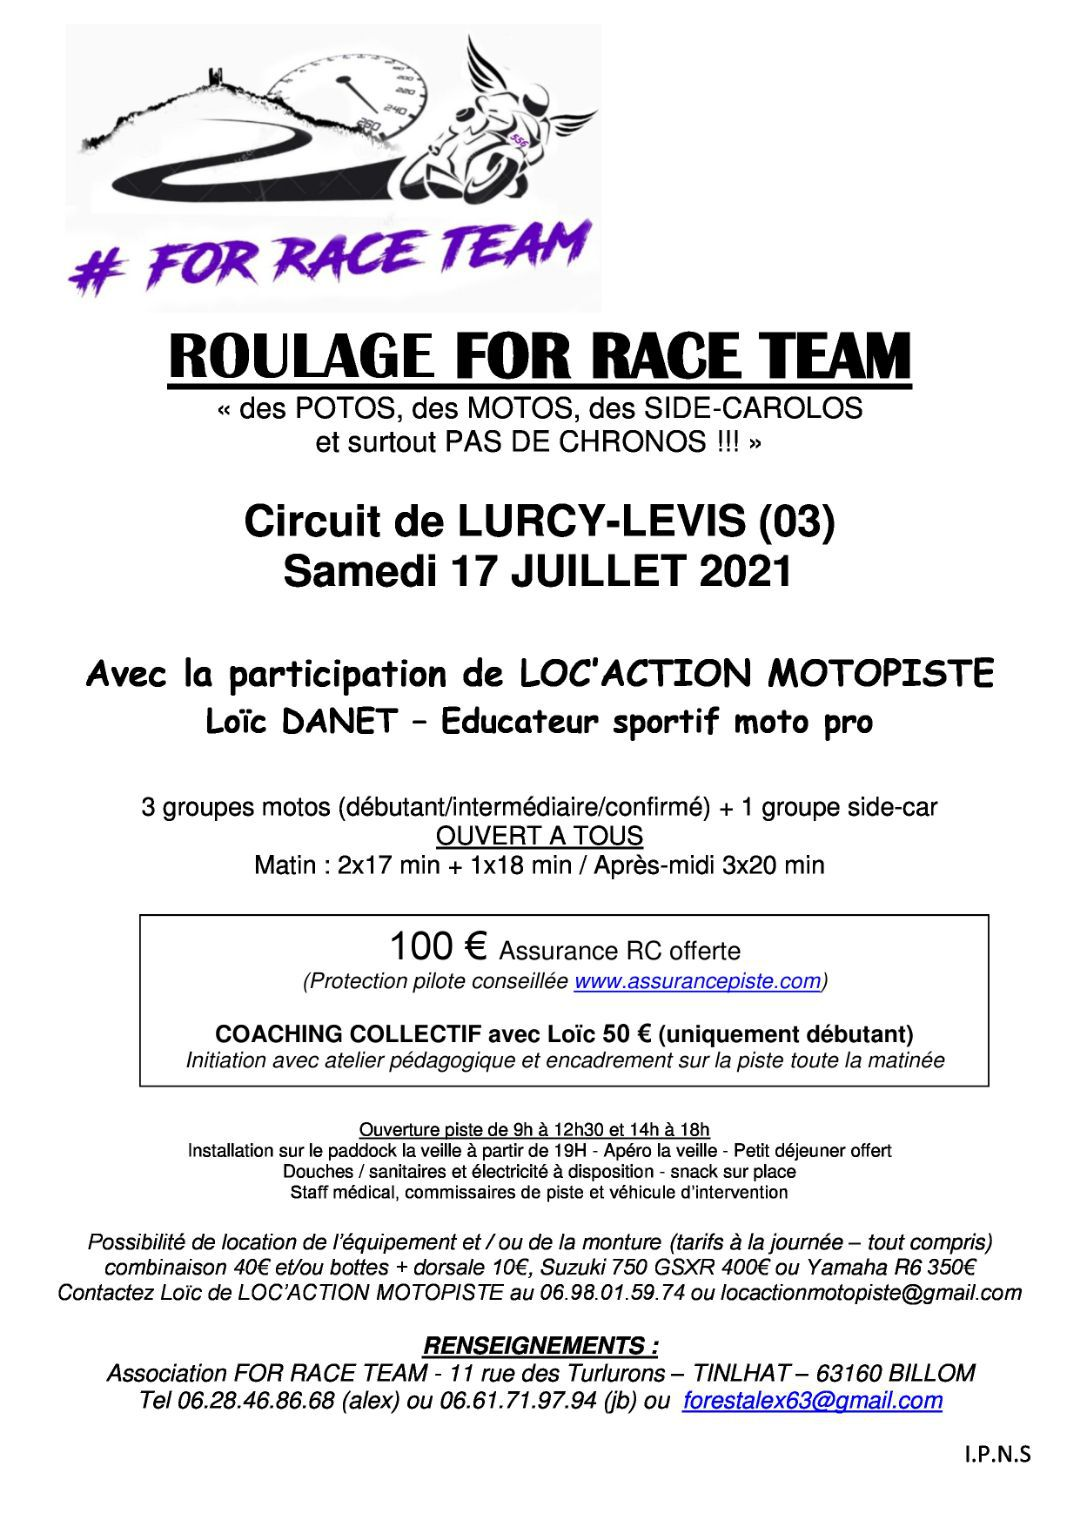 Roulage For Race Team  Lurcy Levis